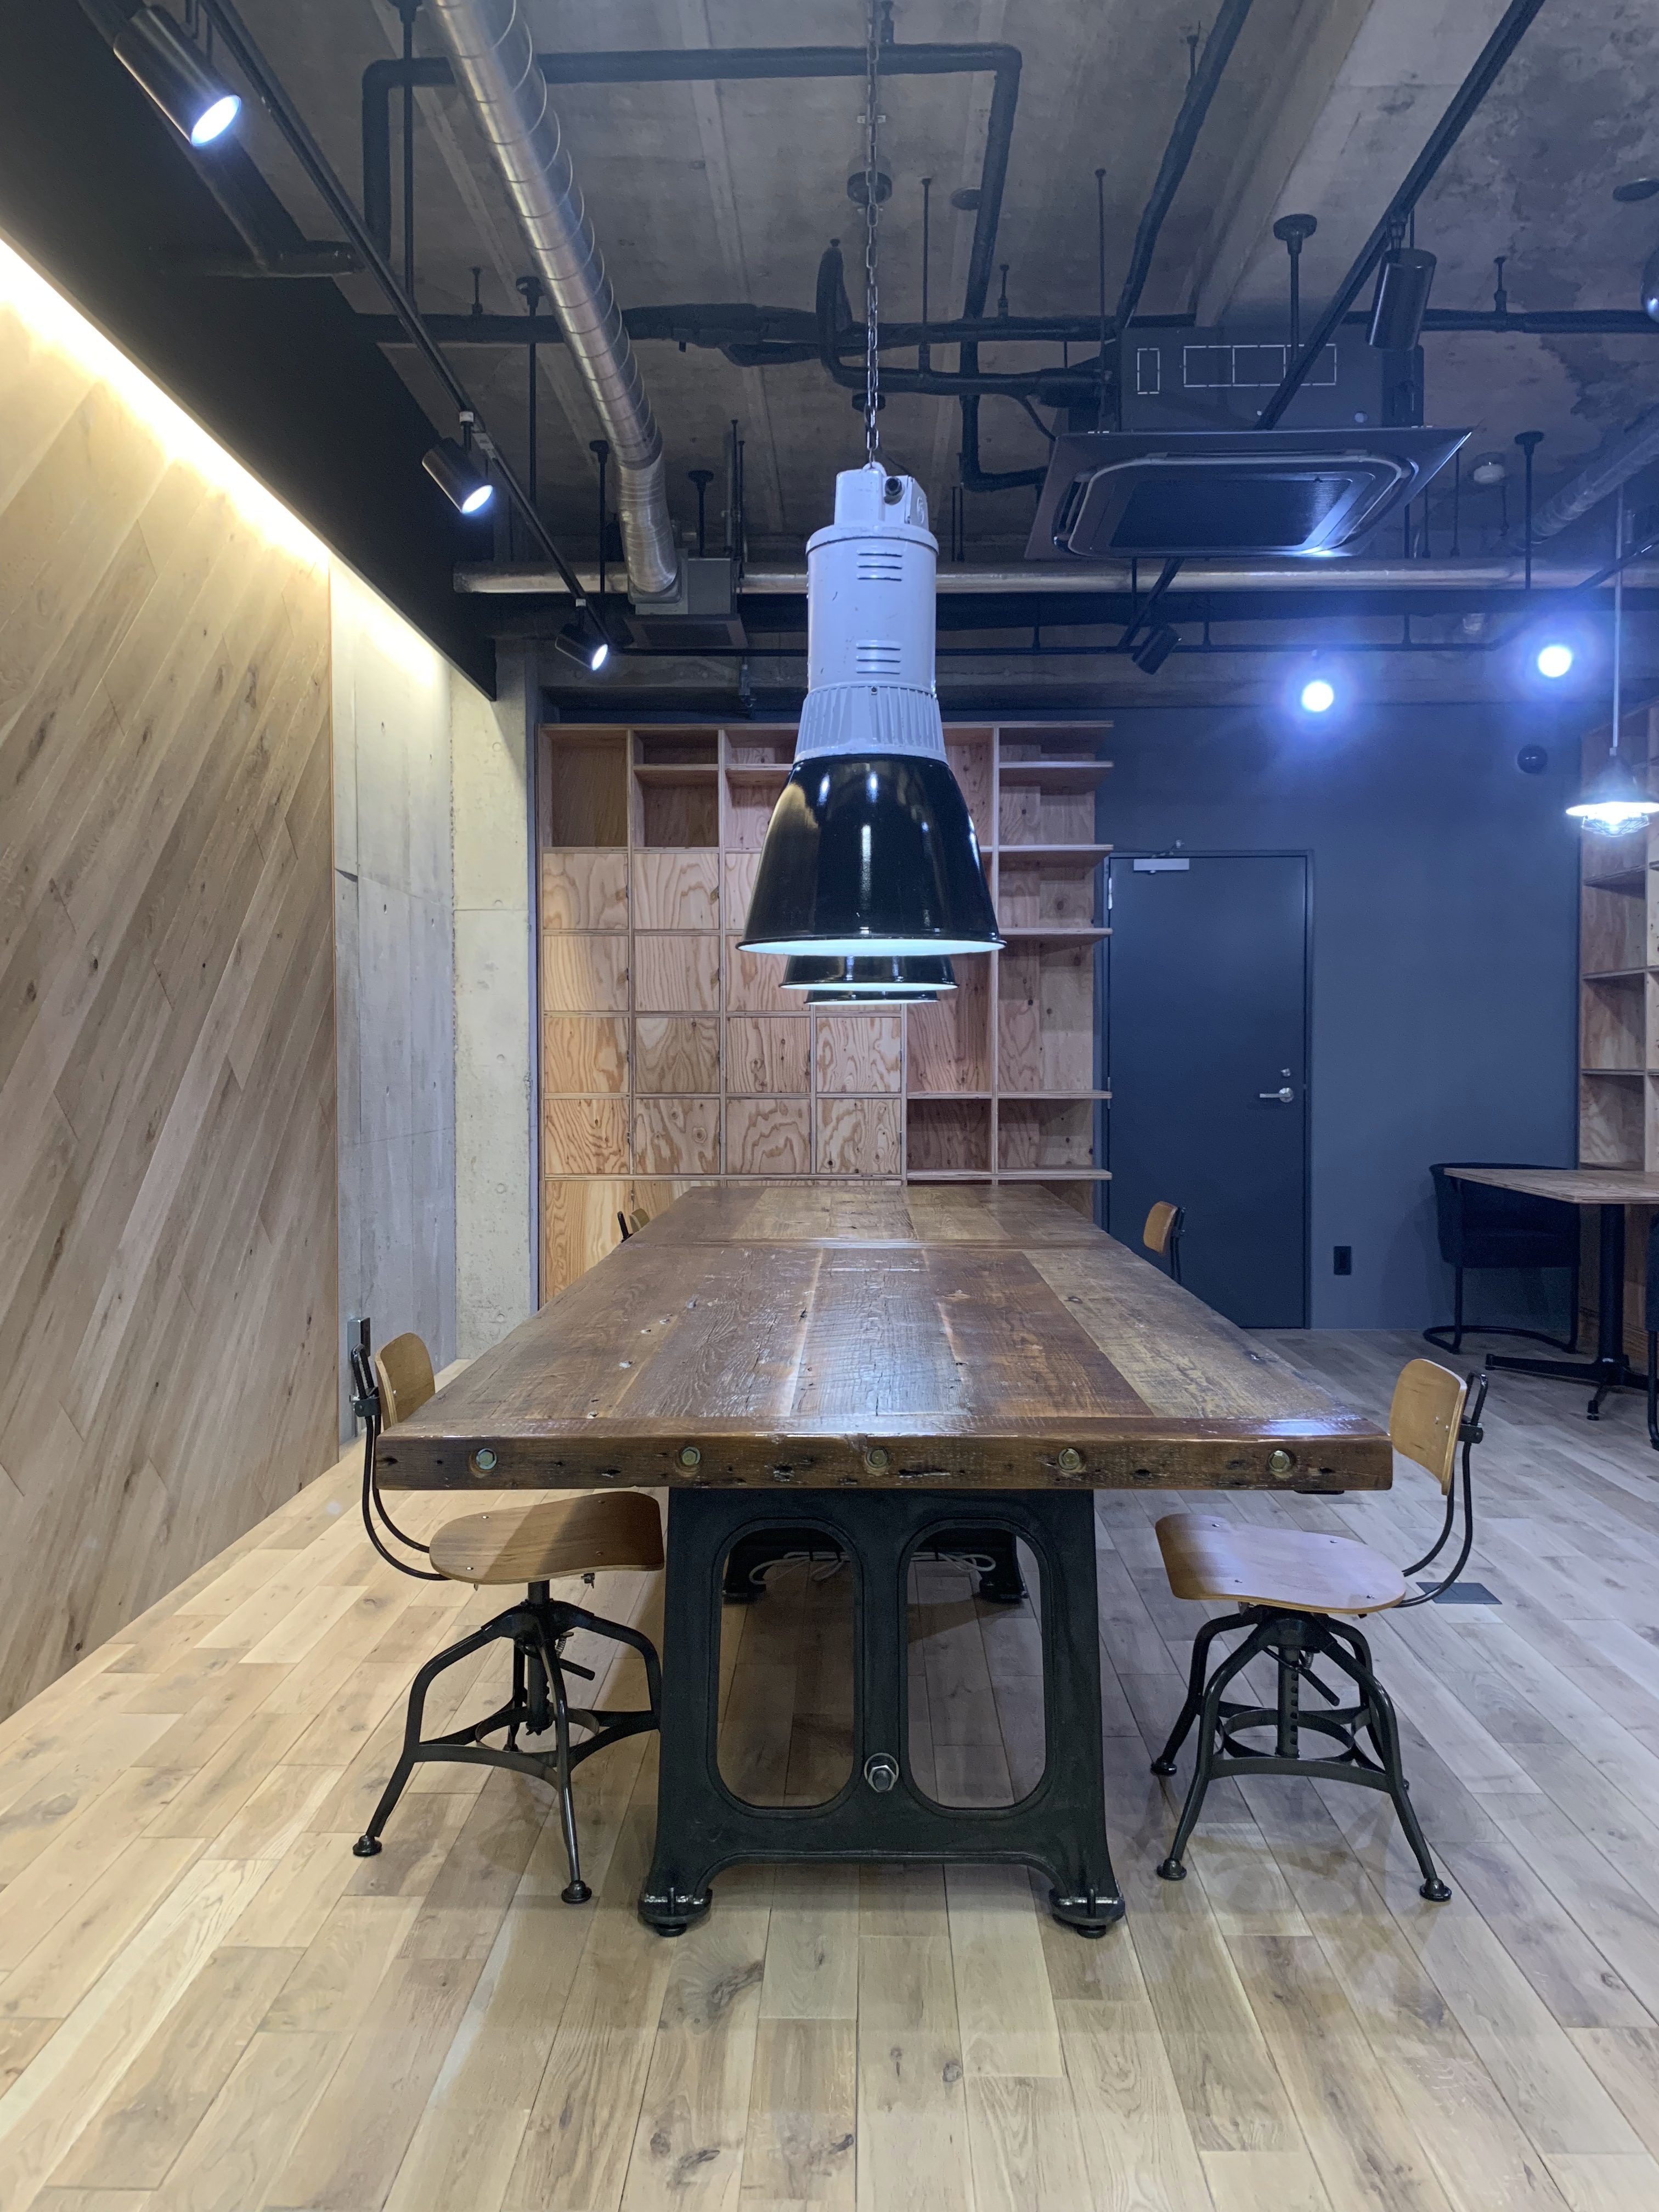 K-lab Co Working space